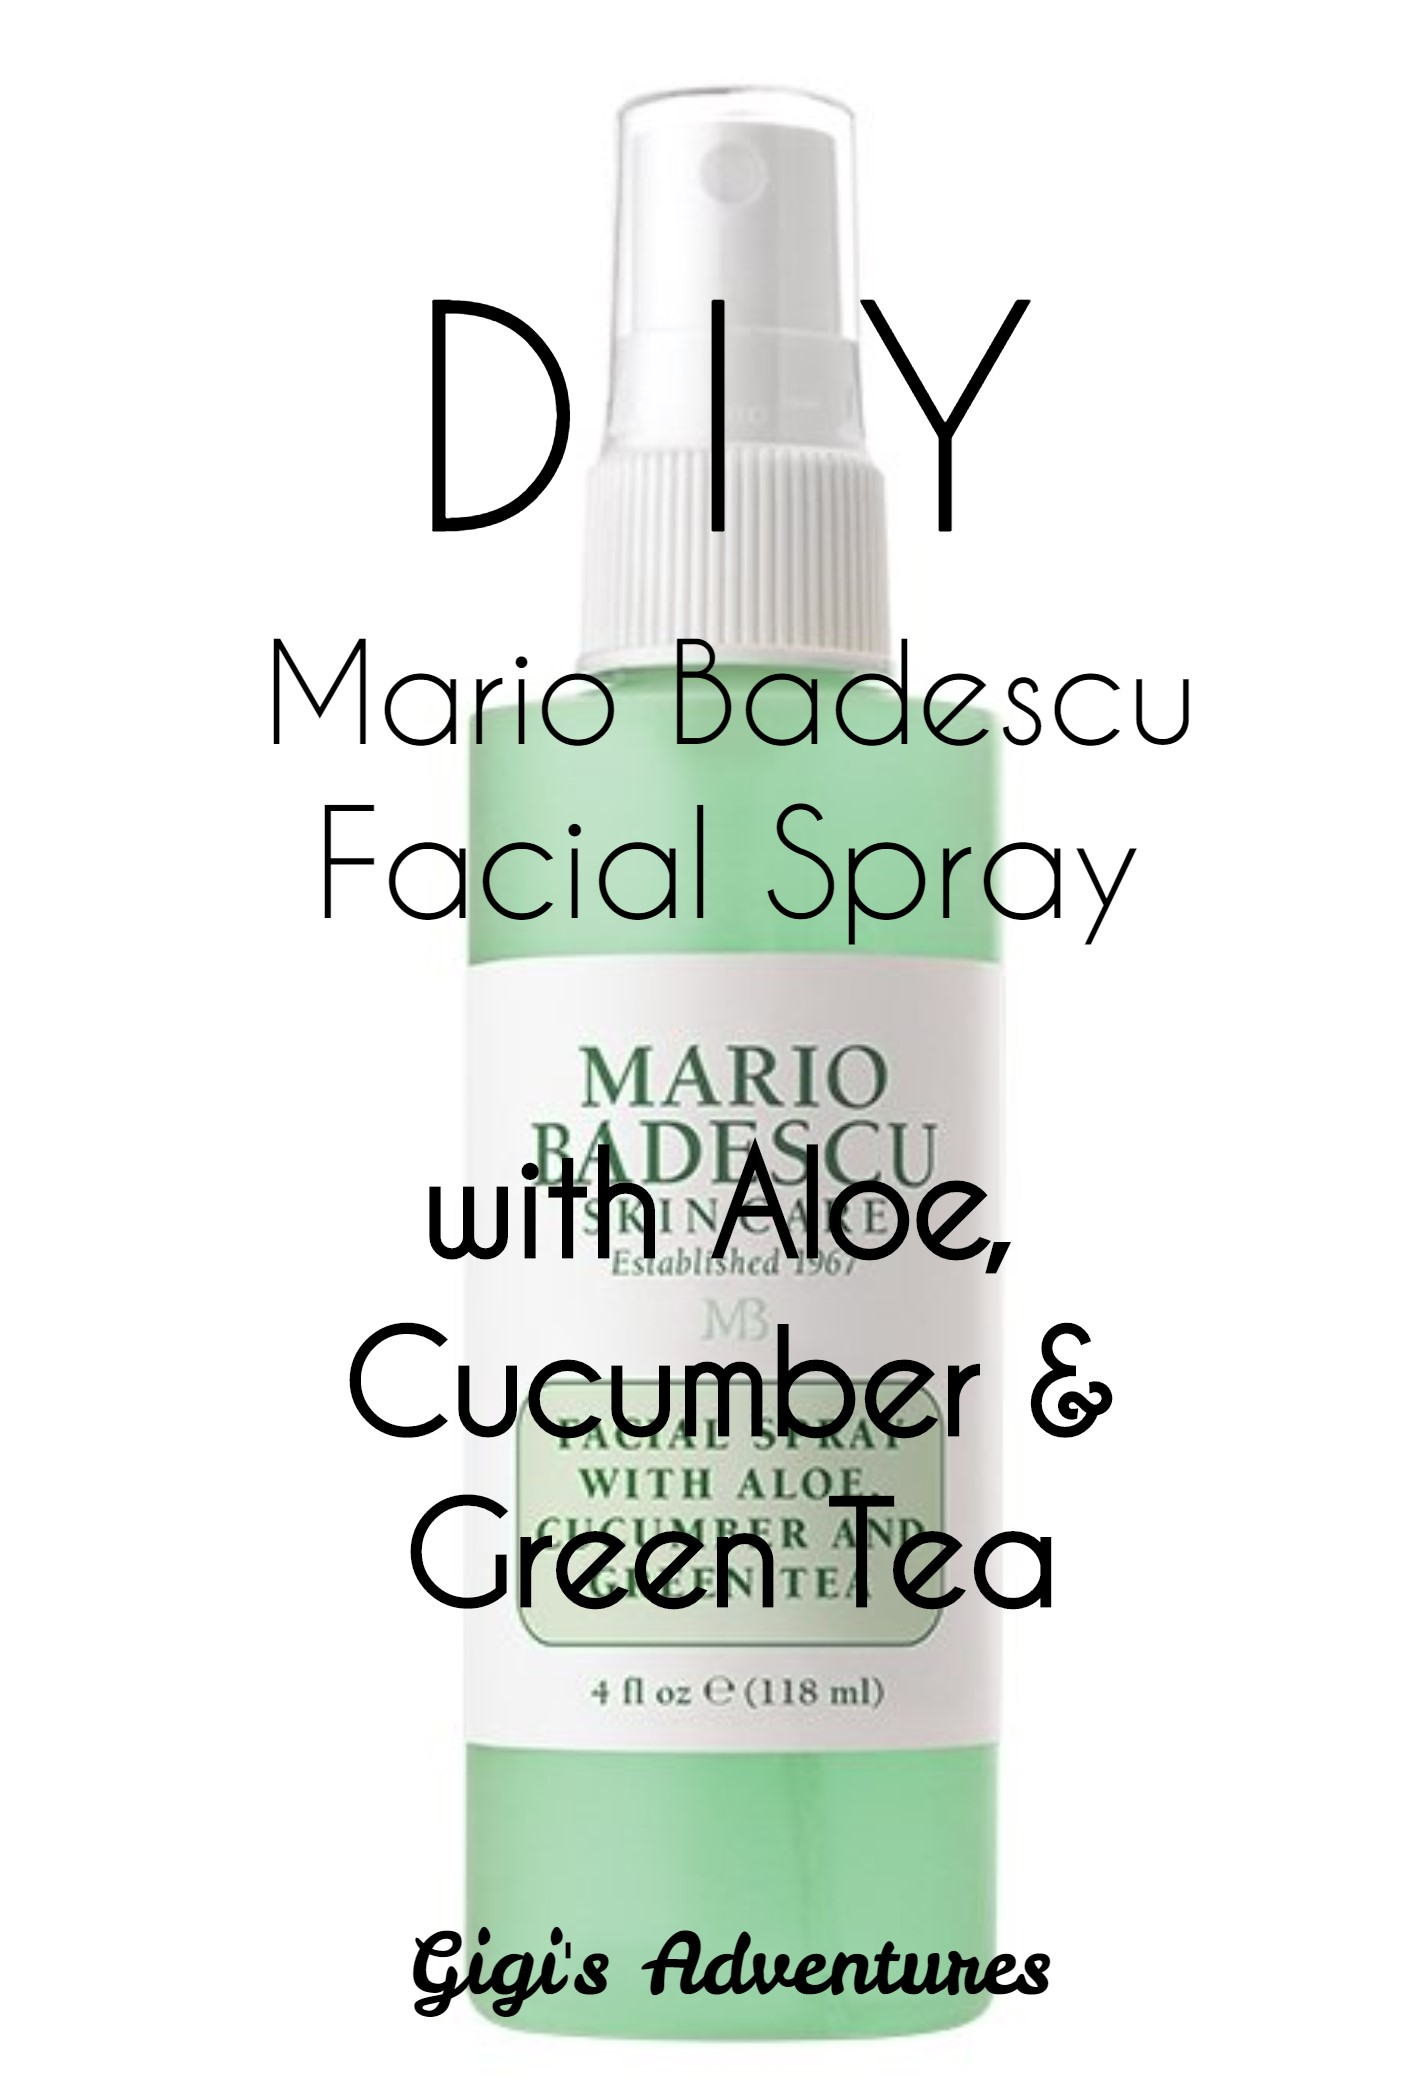 Diy Mario Badescu Facial Spray With Aloe Cucumber And Green Tea